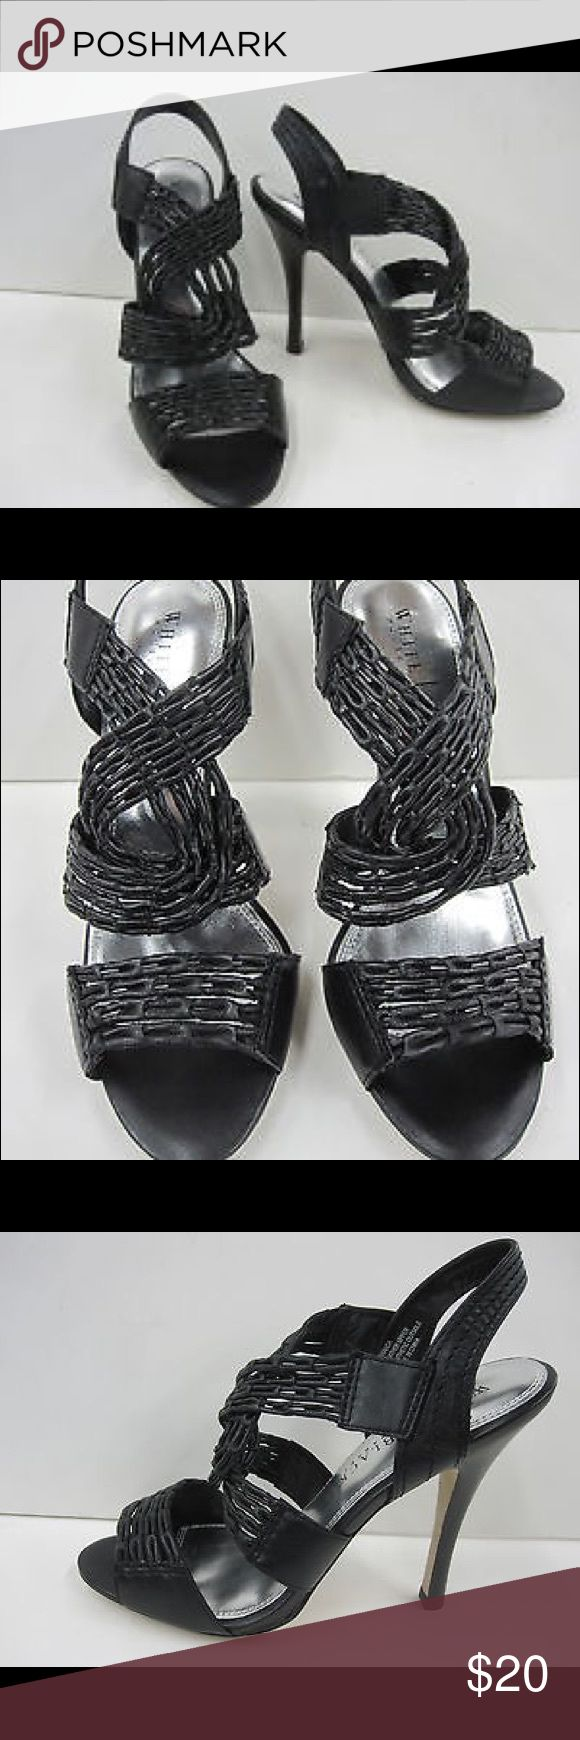 White House Black Market Amanda Strappy Blk Heels White House Black Market Amanda Strappy Heels, Sz 9. Features intricately woven black leather with 4.75in heels. Must have for you summer wardrobe. I many more WHBM items listed in addition to designer labels and name brands including Calvin Klein, Ralph Lauren, Gianfranco Ferre, Anthropologie, Free People and many more. Thanks for shopping in my closet! White House Black Market Shoes Heels